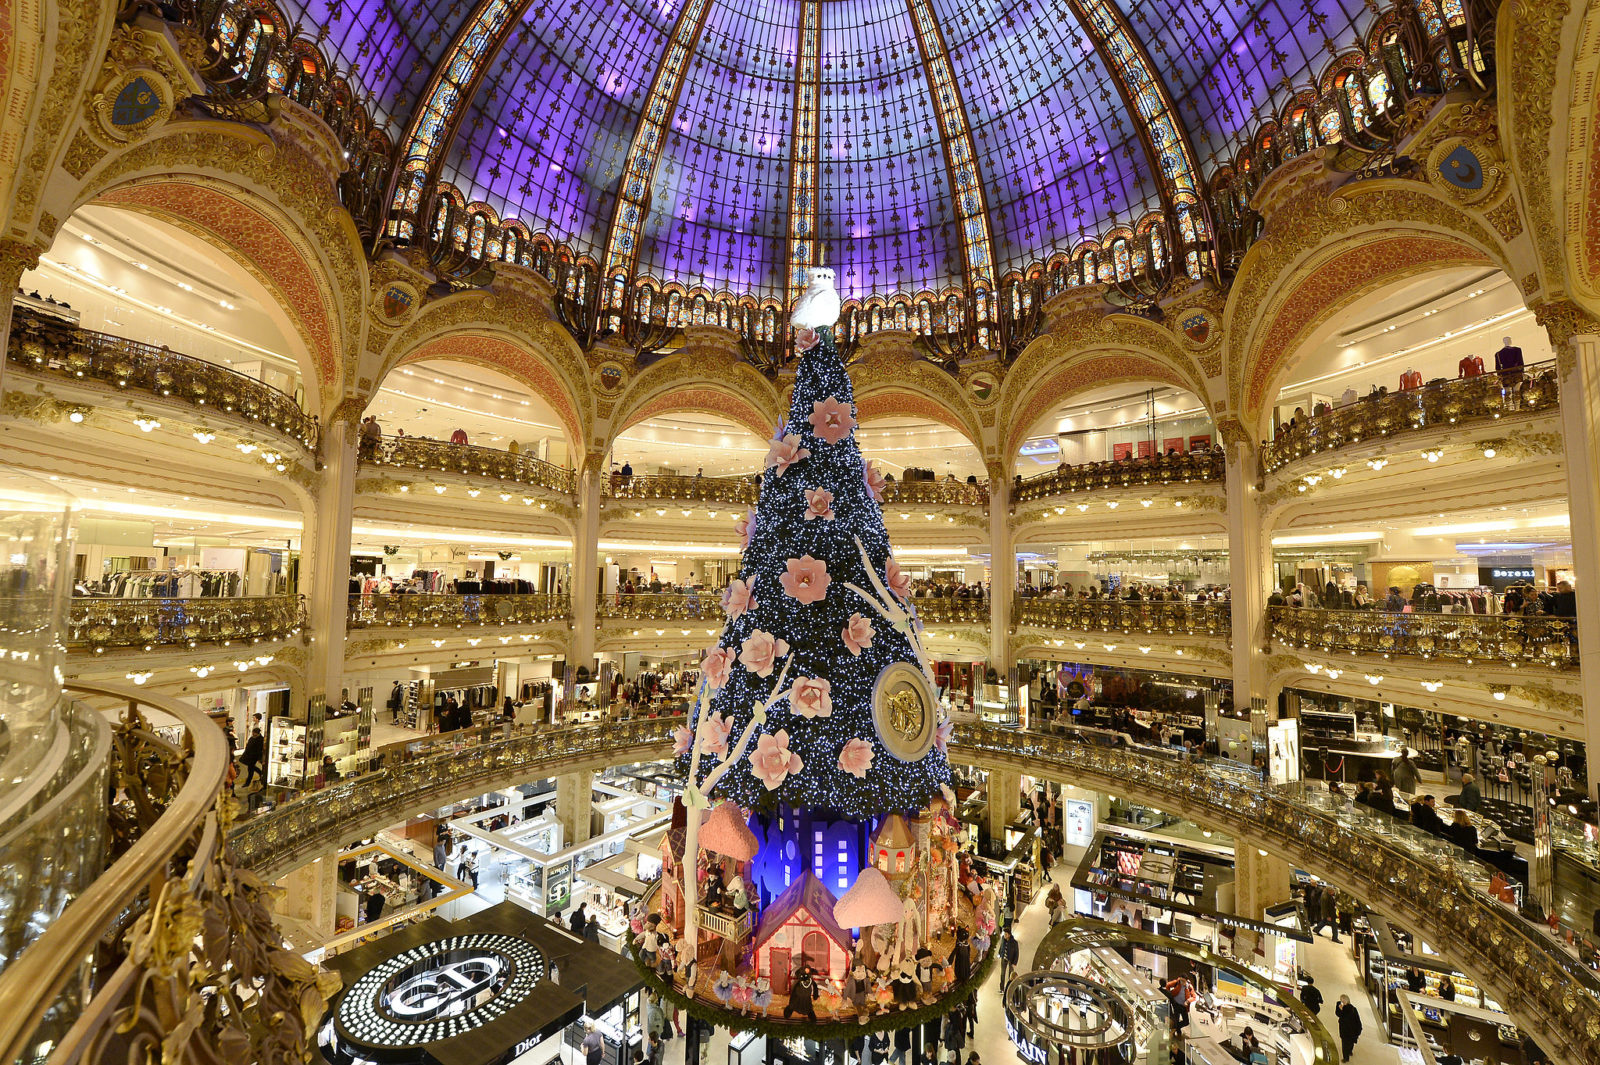 25 of The Most Elaborate Christmas Trees from Around The World